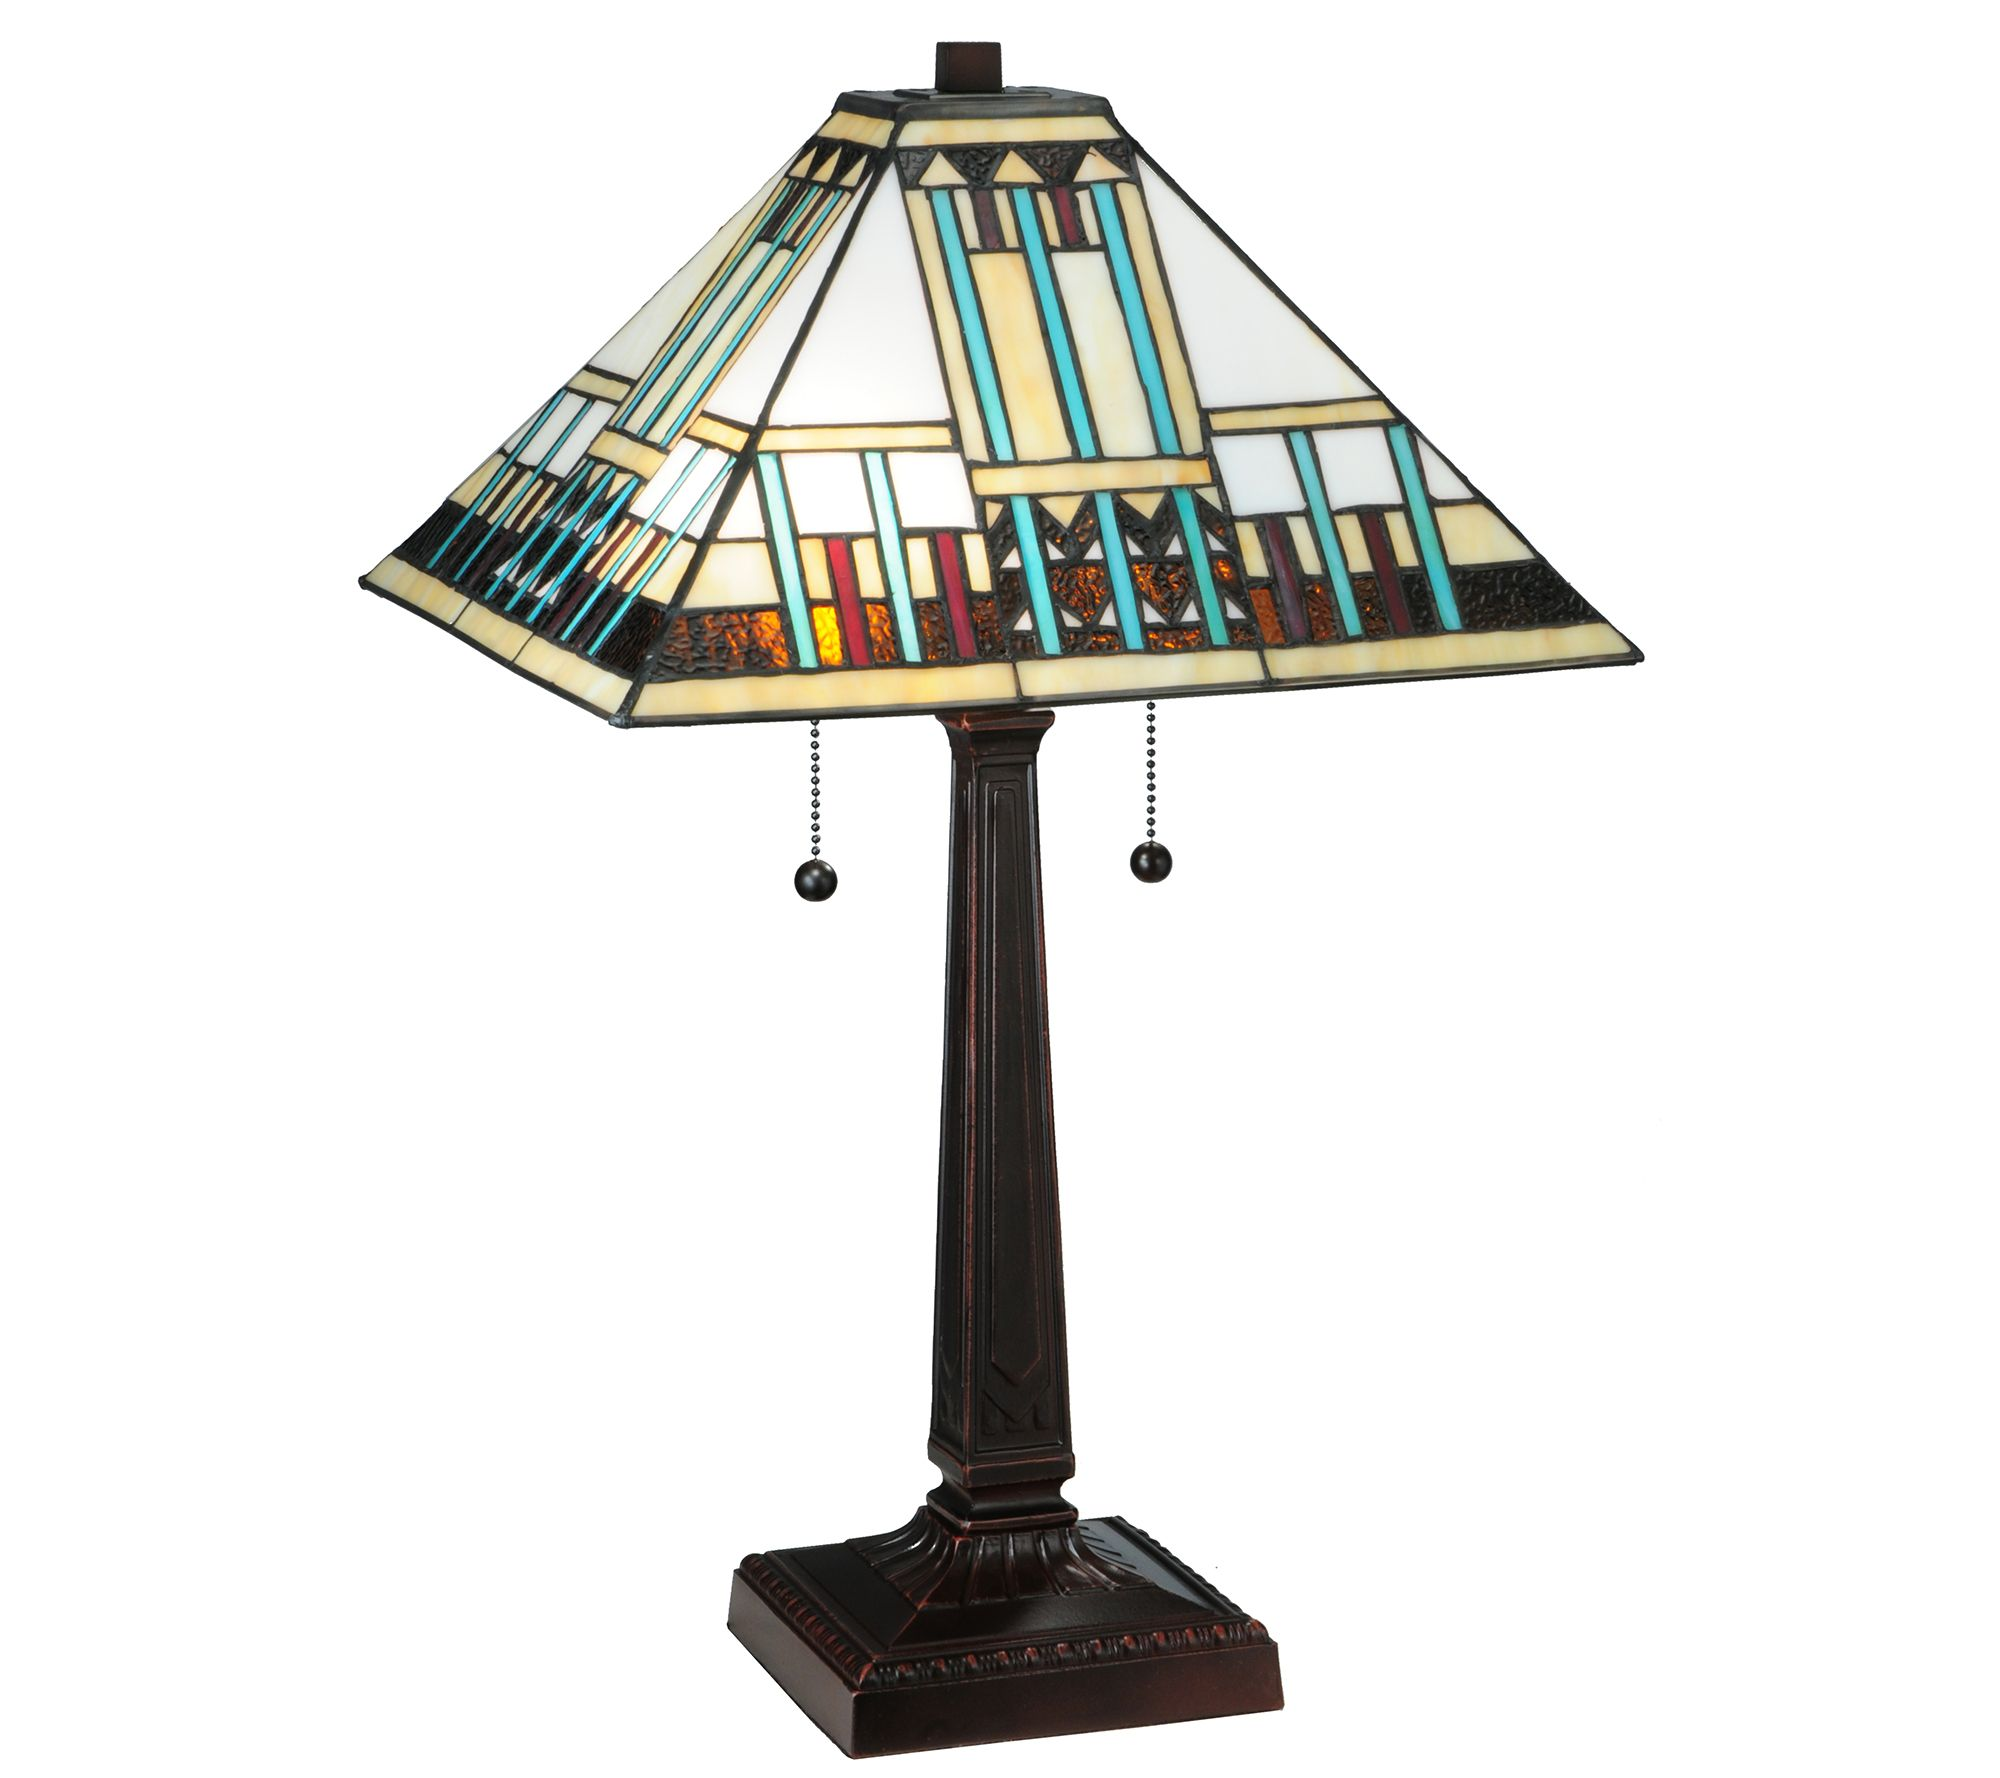 Meyda tiffany style 23quoth prairie peaks table lamp qvccom for Tiffany floor lamp qvc